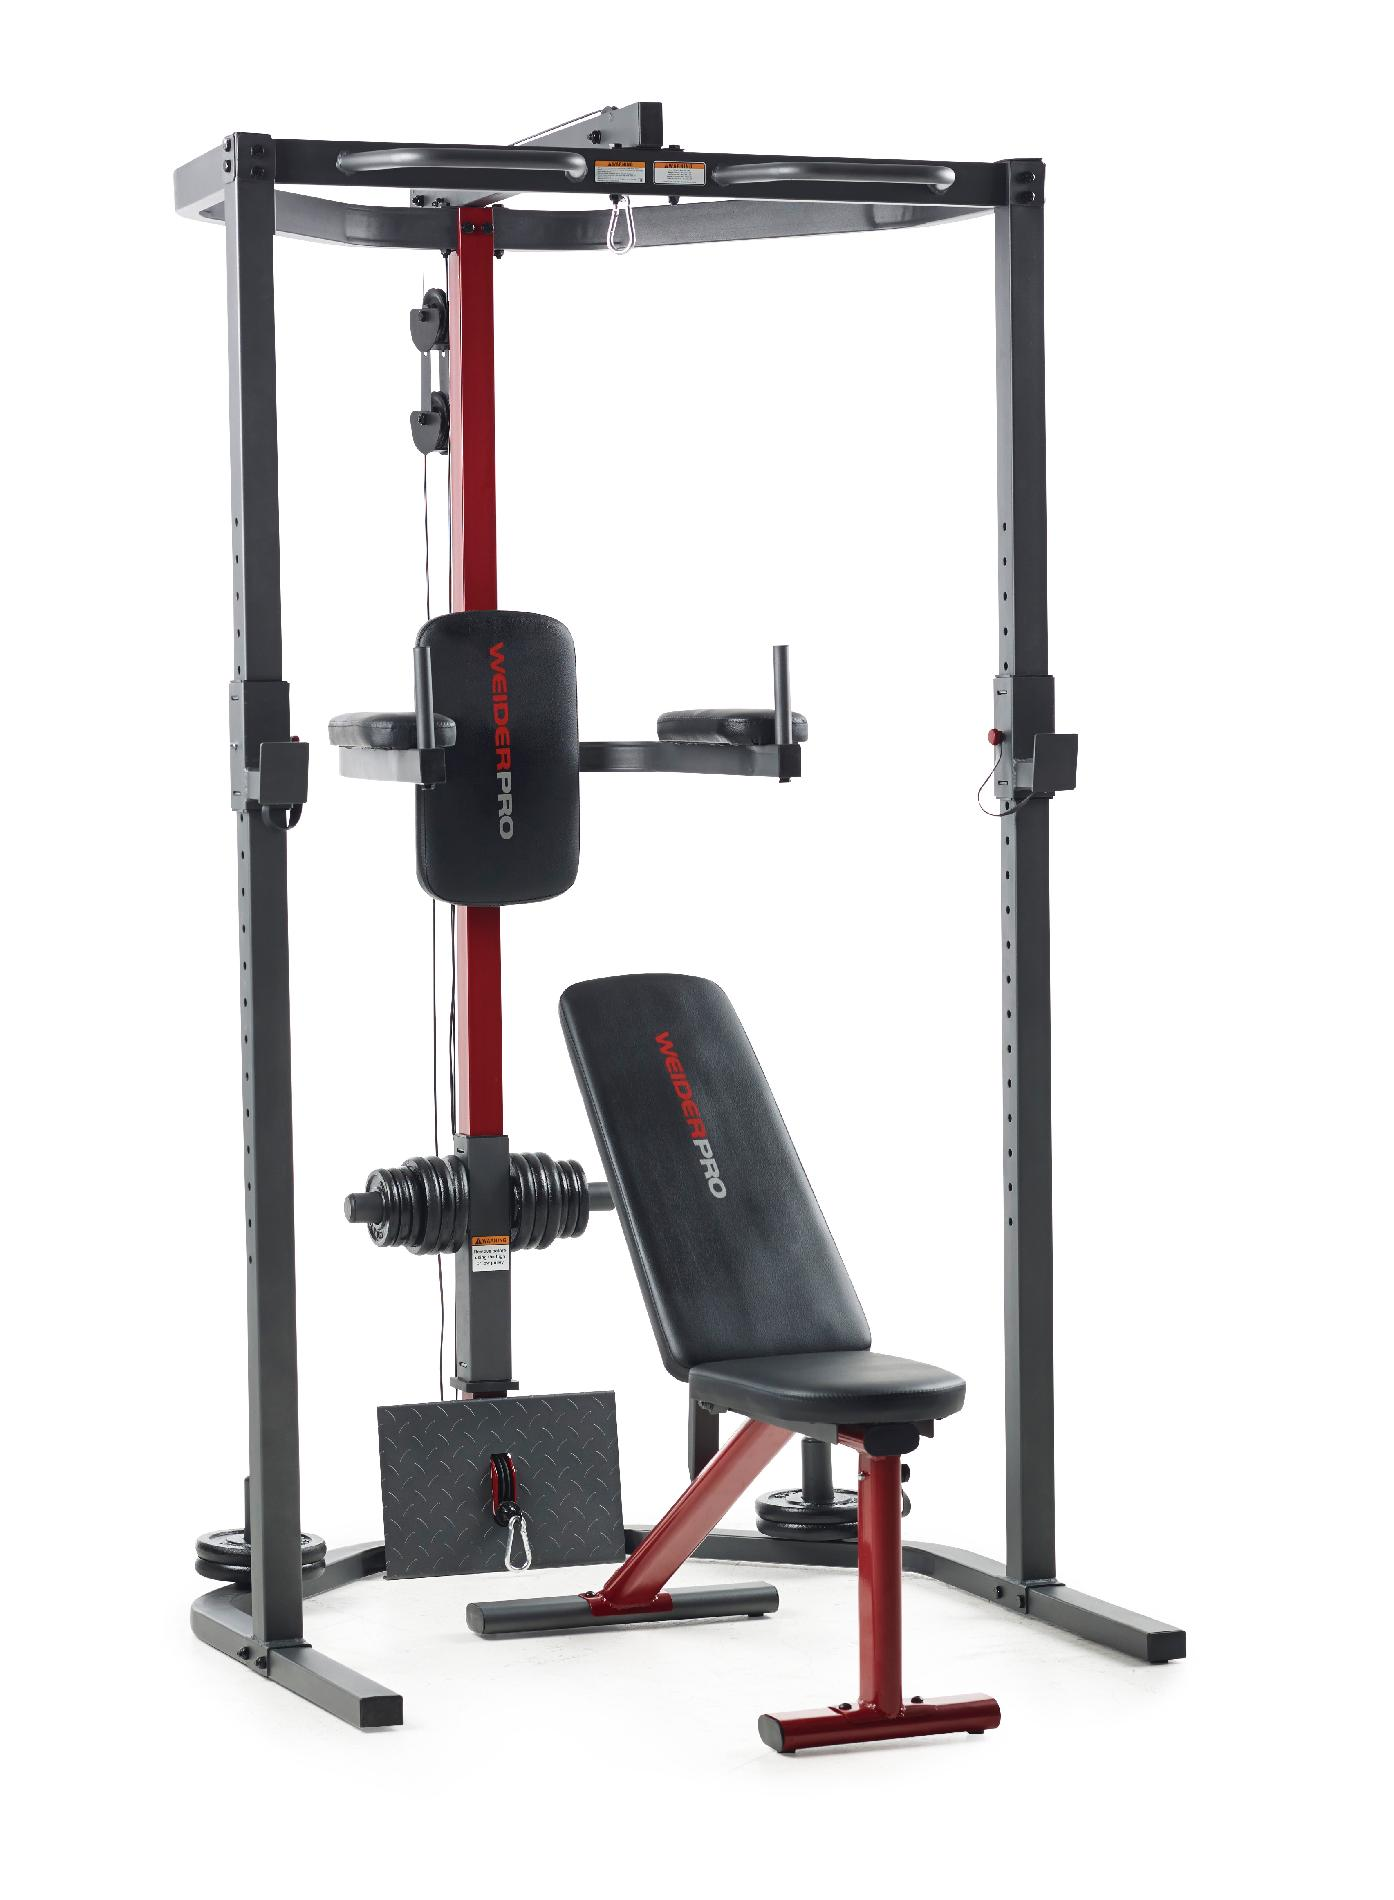 Weider Pro Multi Position Bench